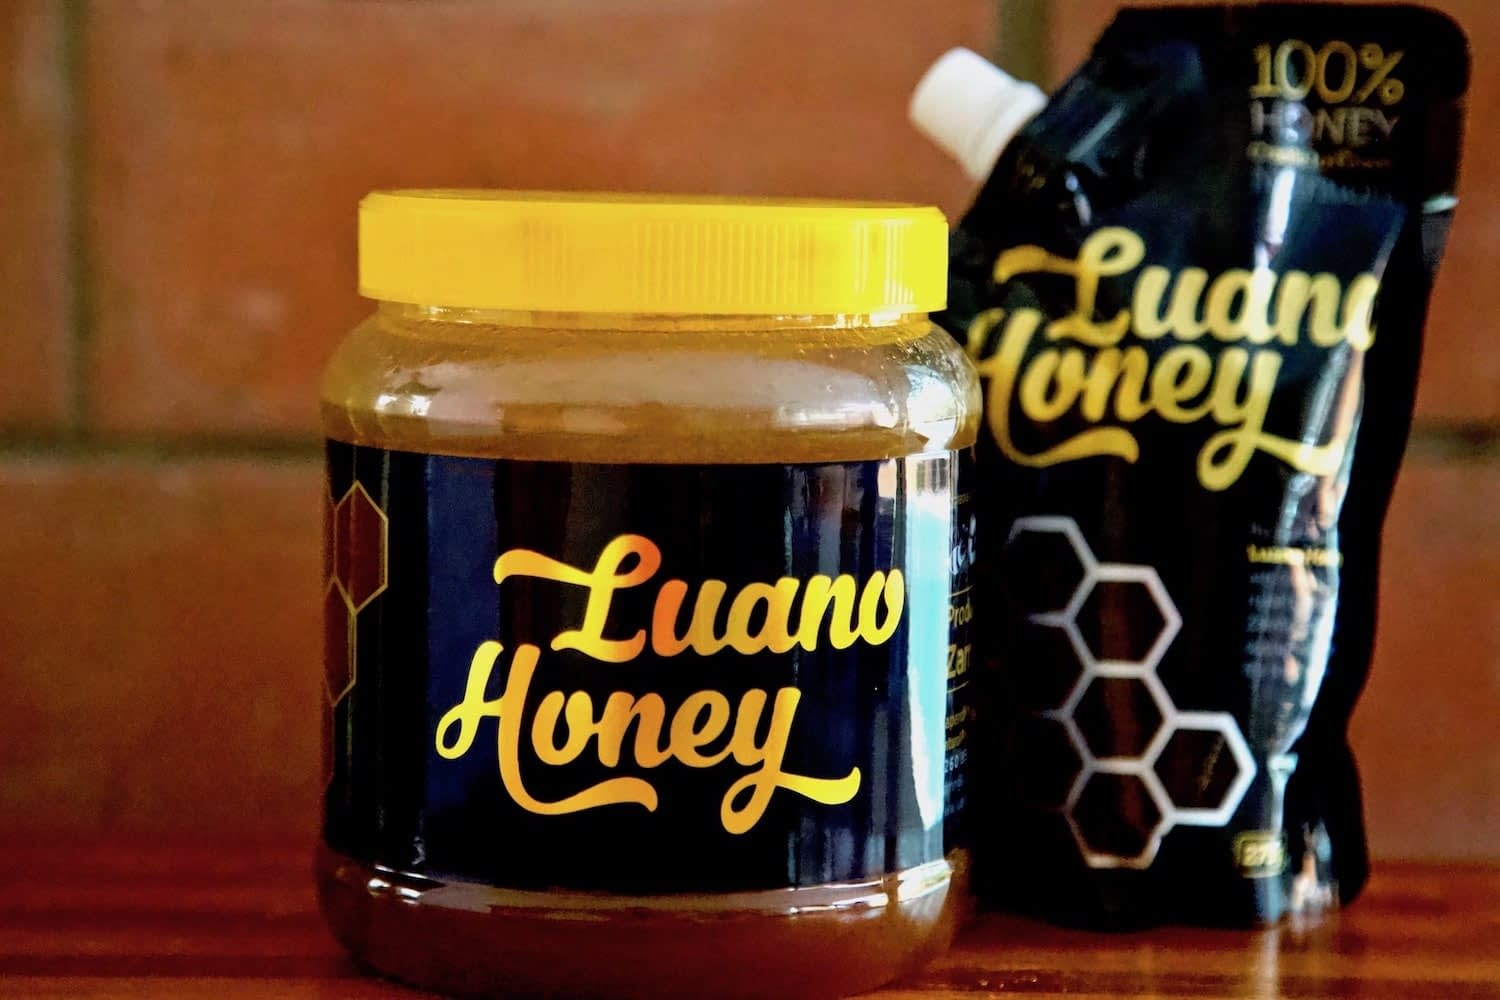 Luano Honey Jar and Pouch